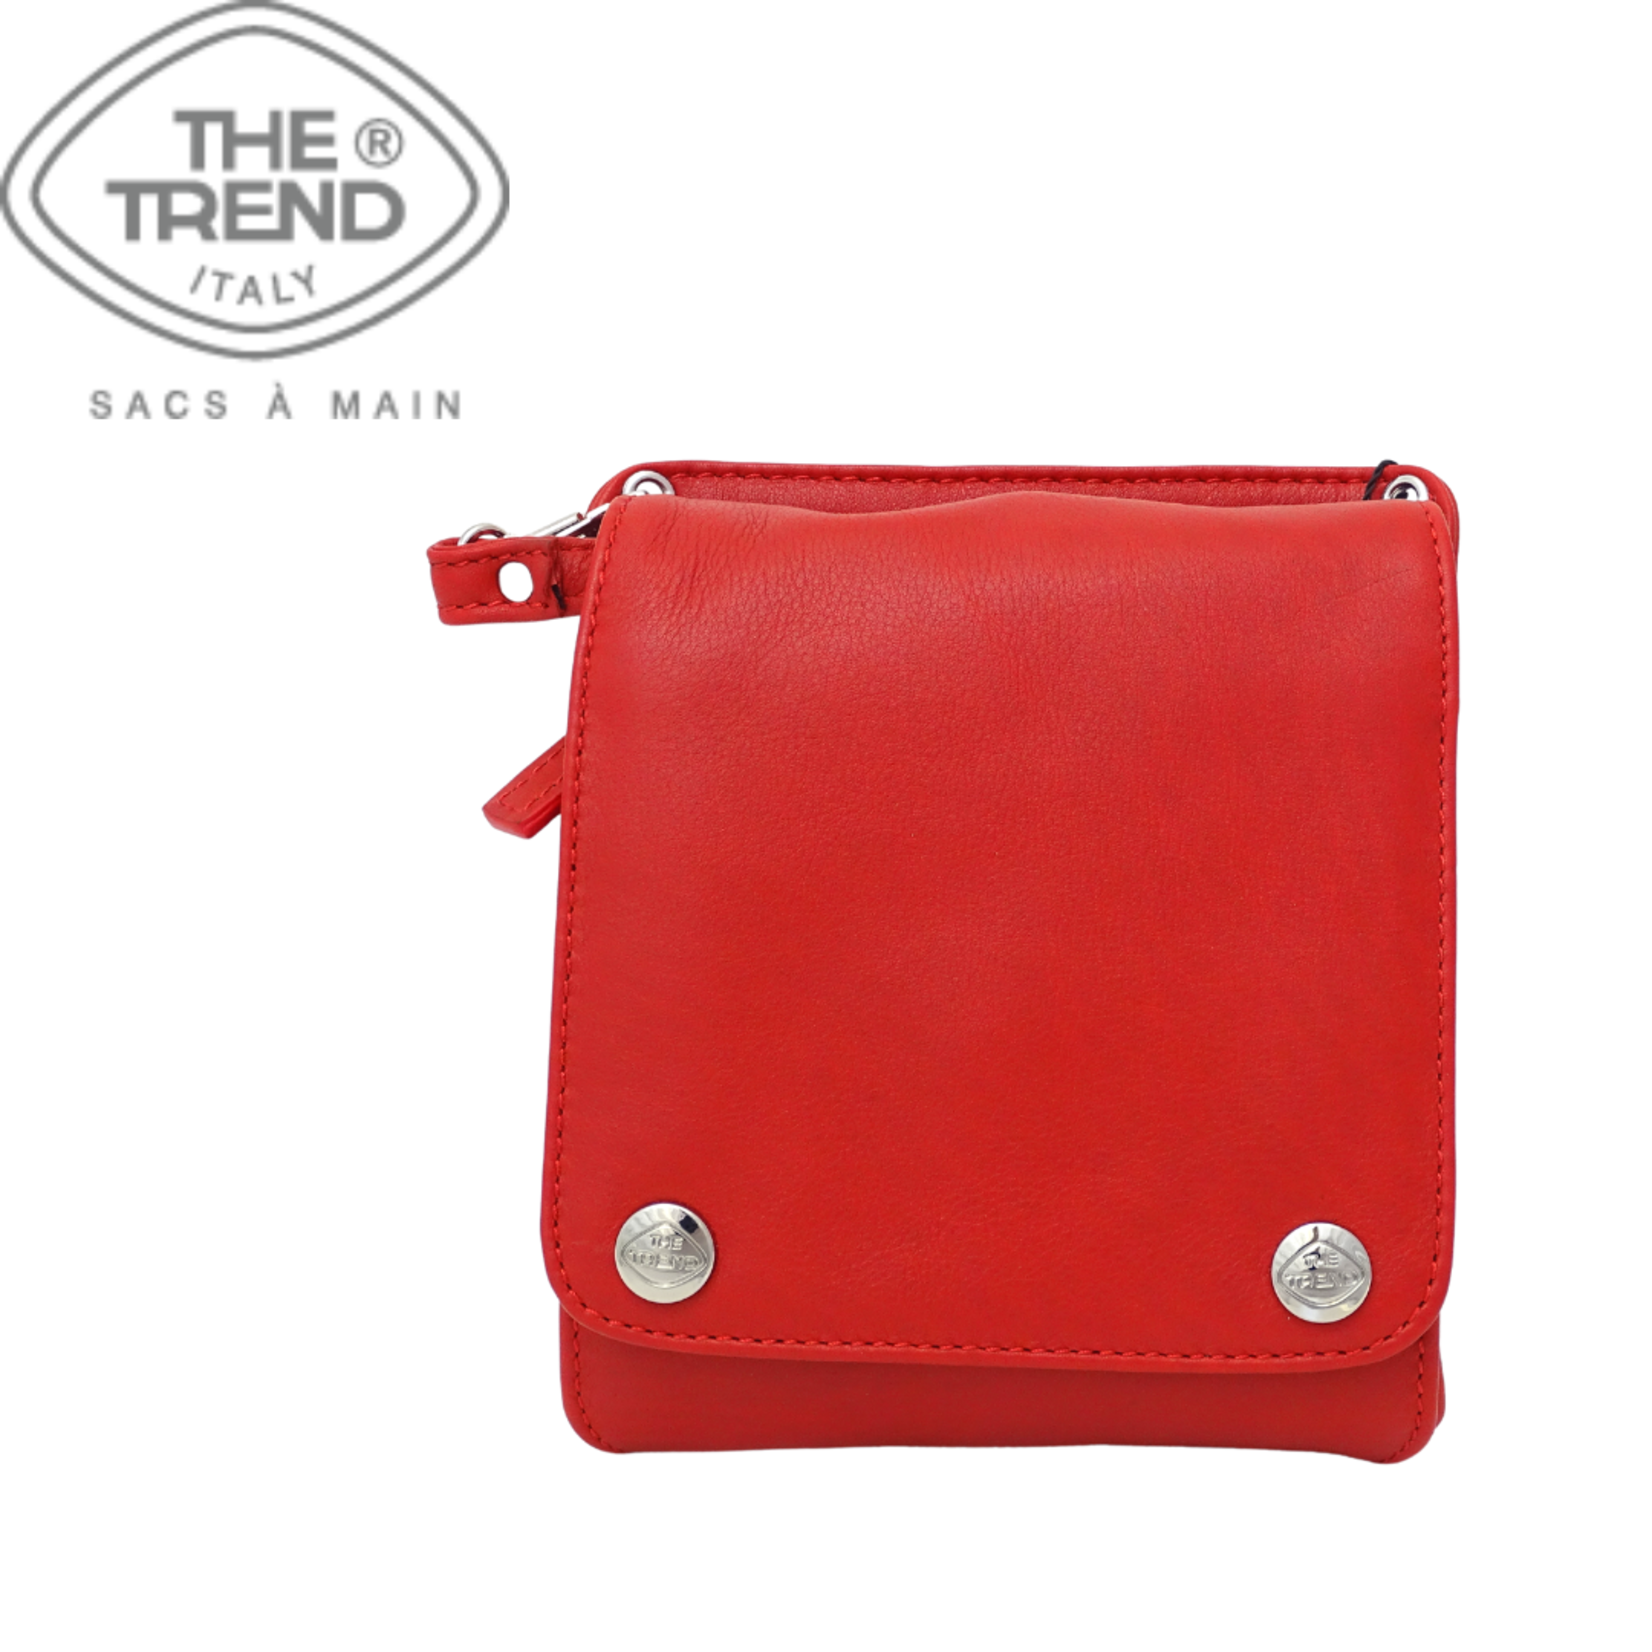 The Trend The Trend 585517 red